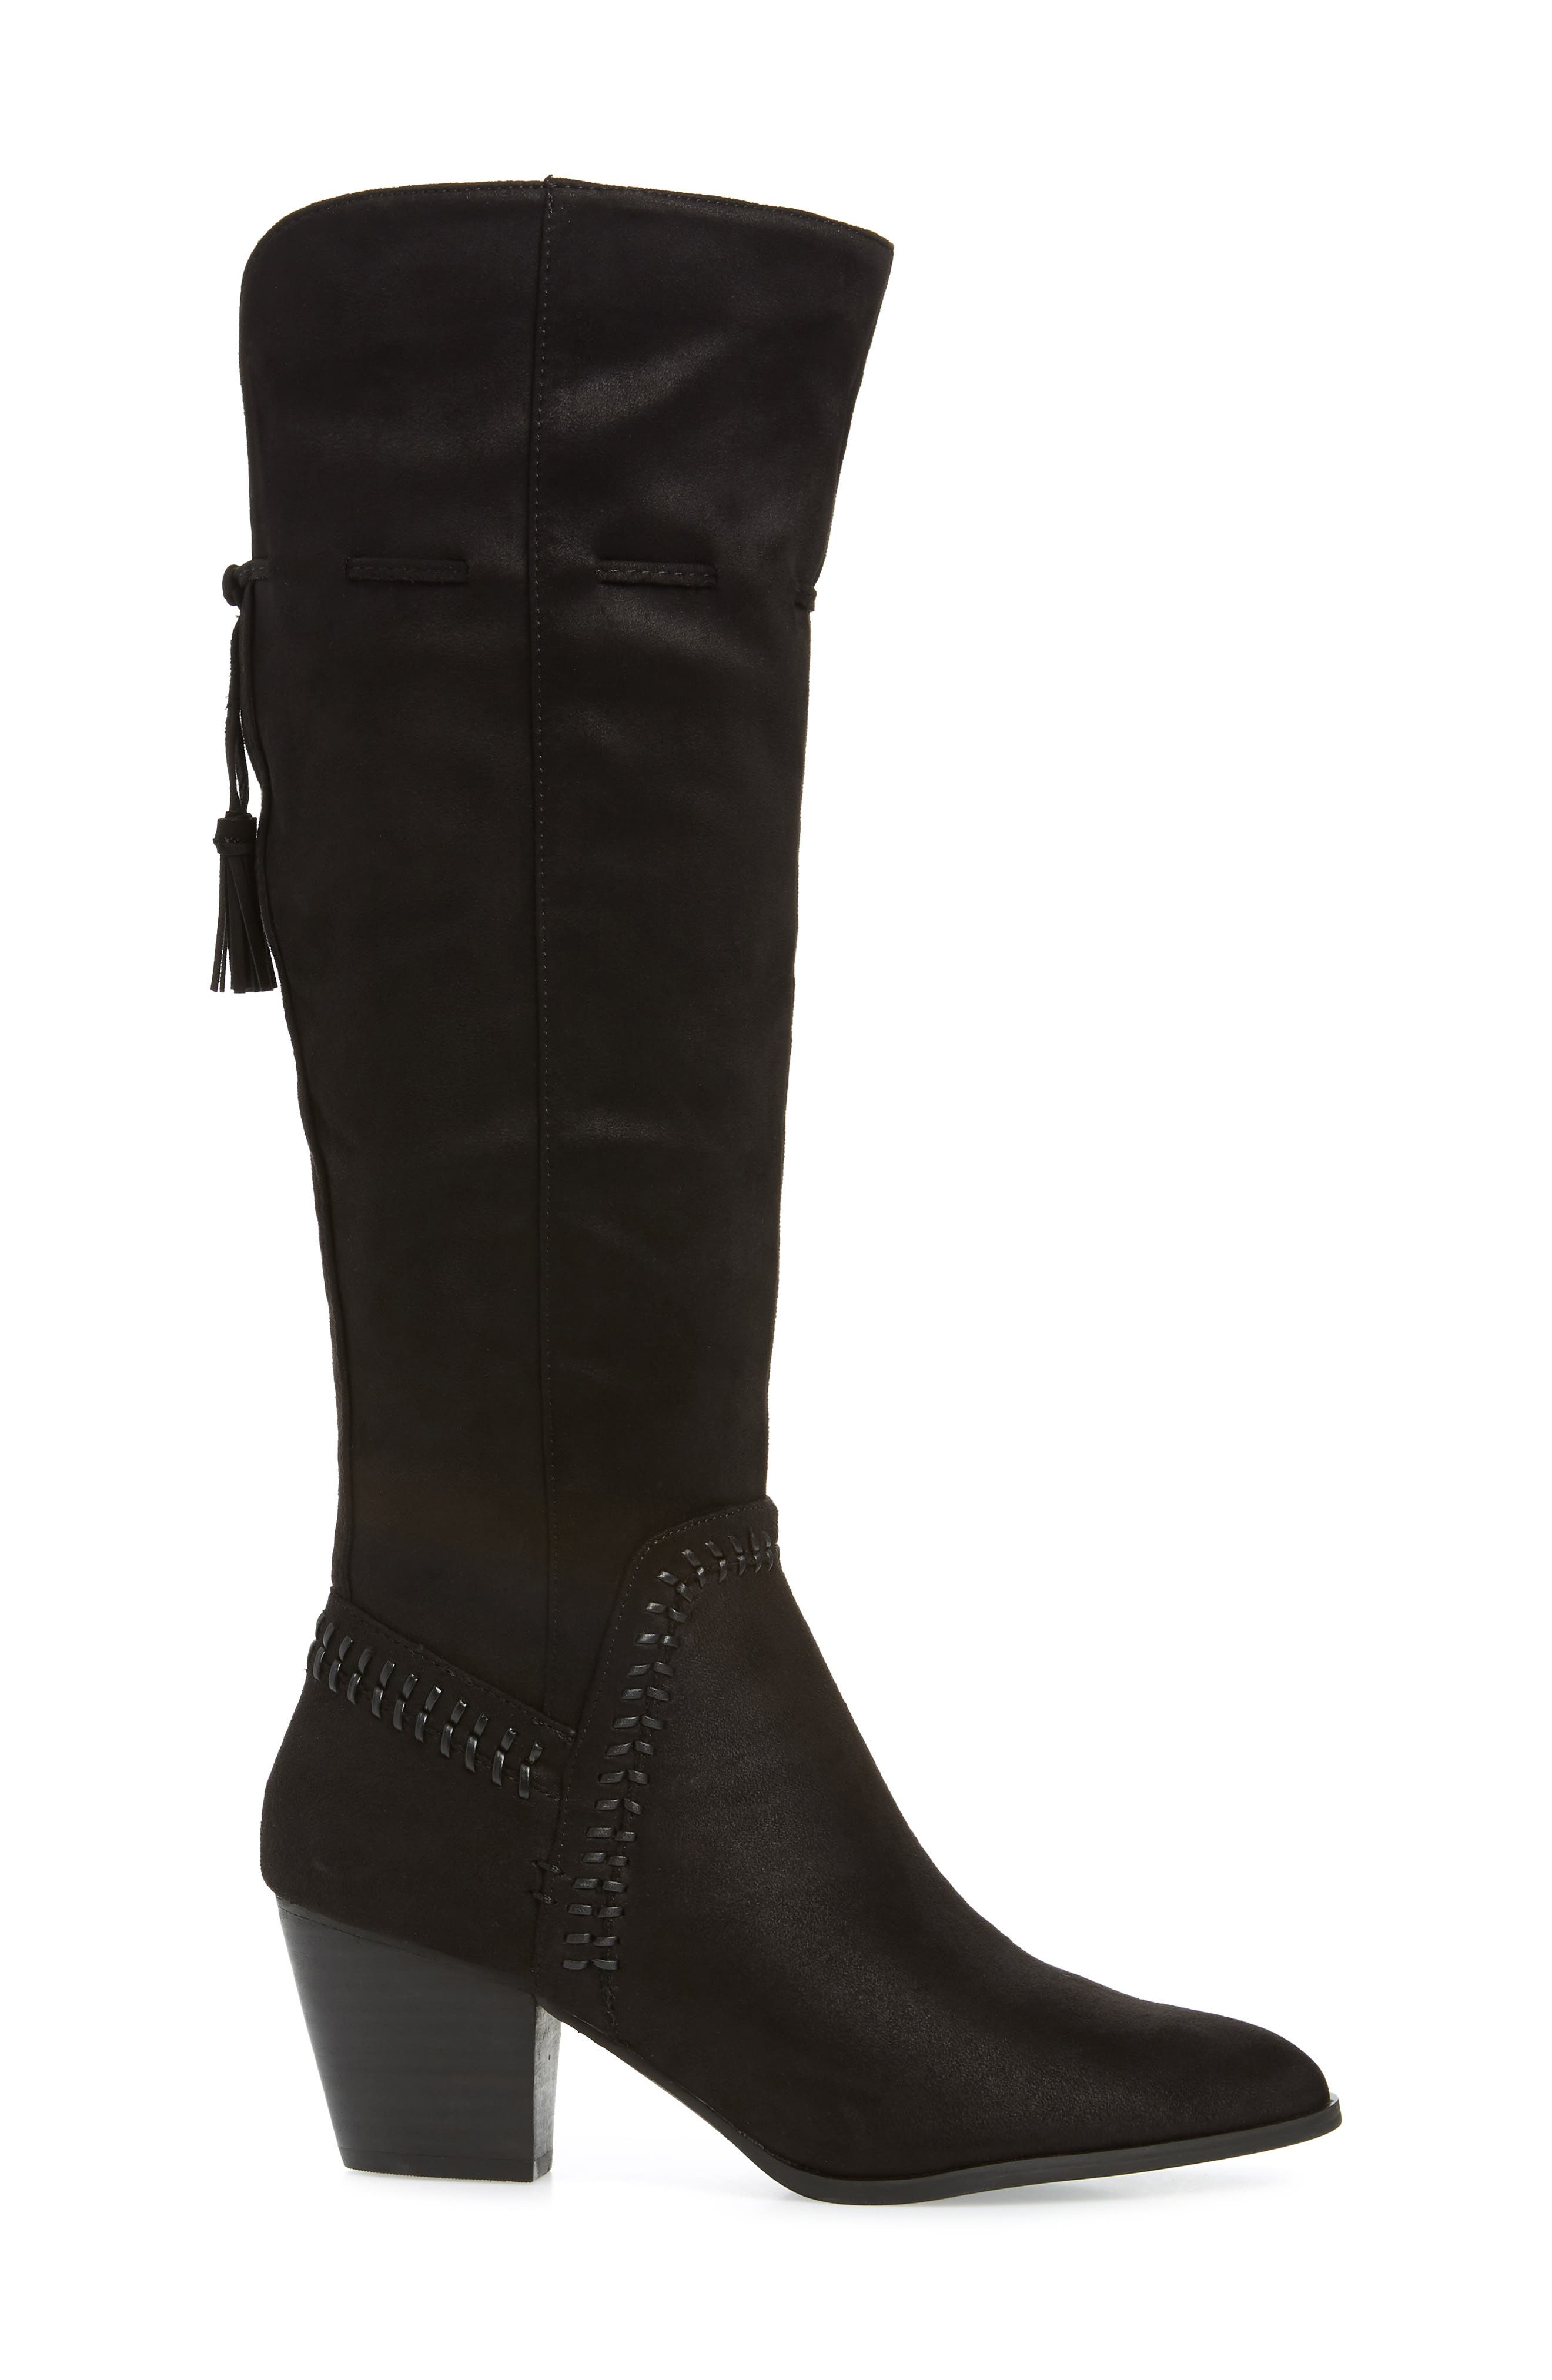 BELLA VITA, Eleanor II Knee High Boot, Alternate thumbnail 3, color, BLACK